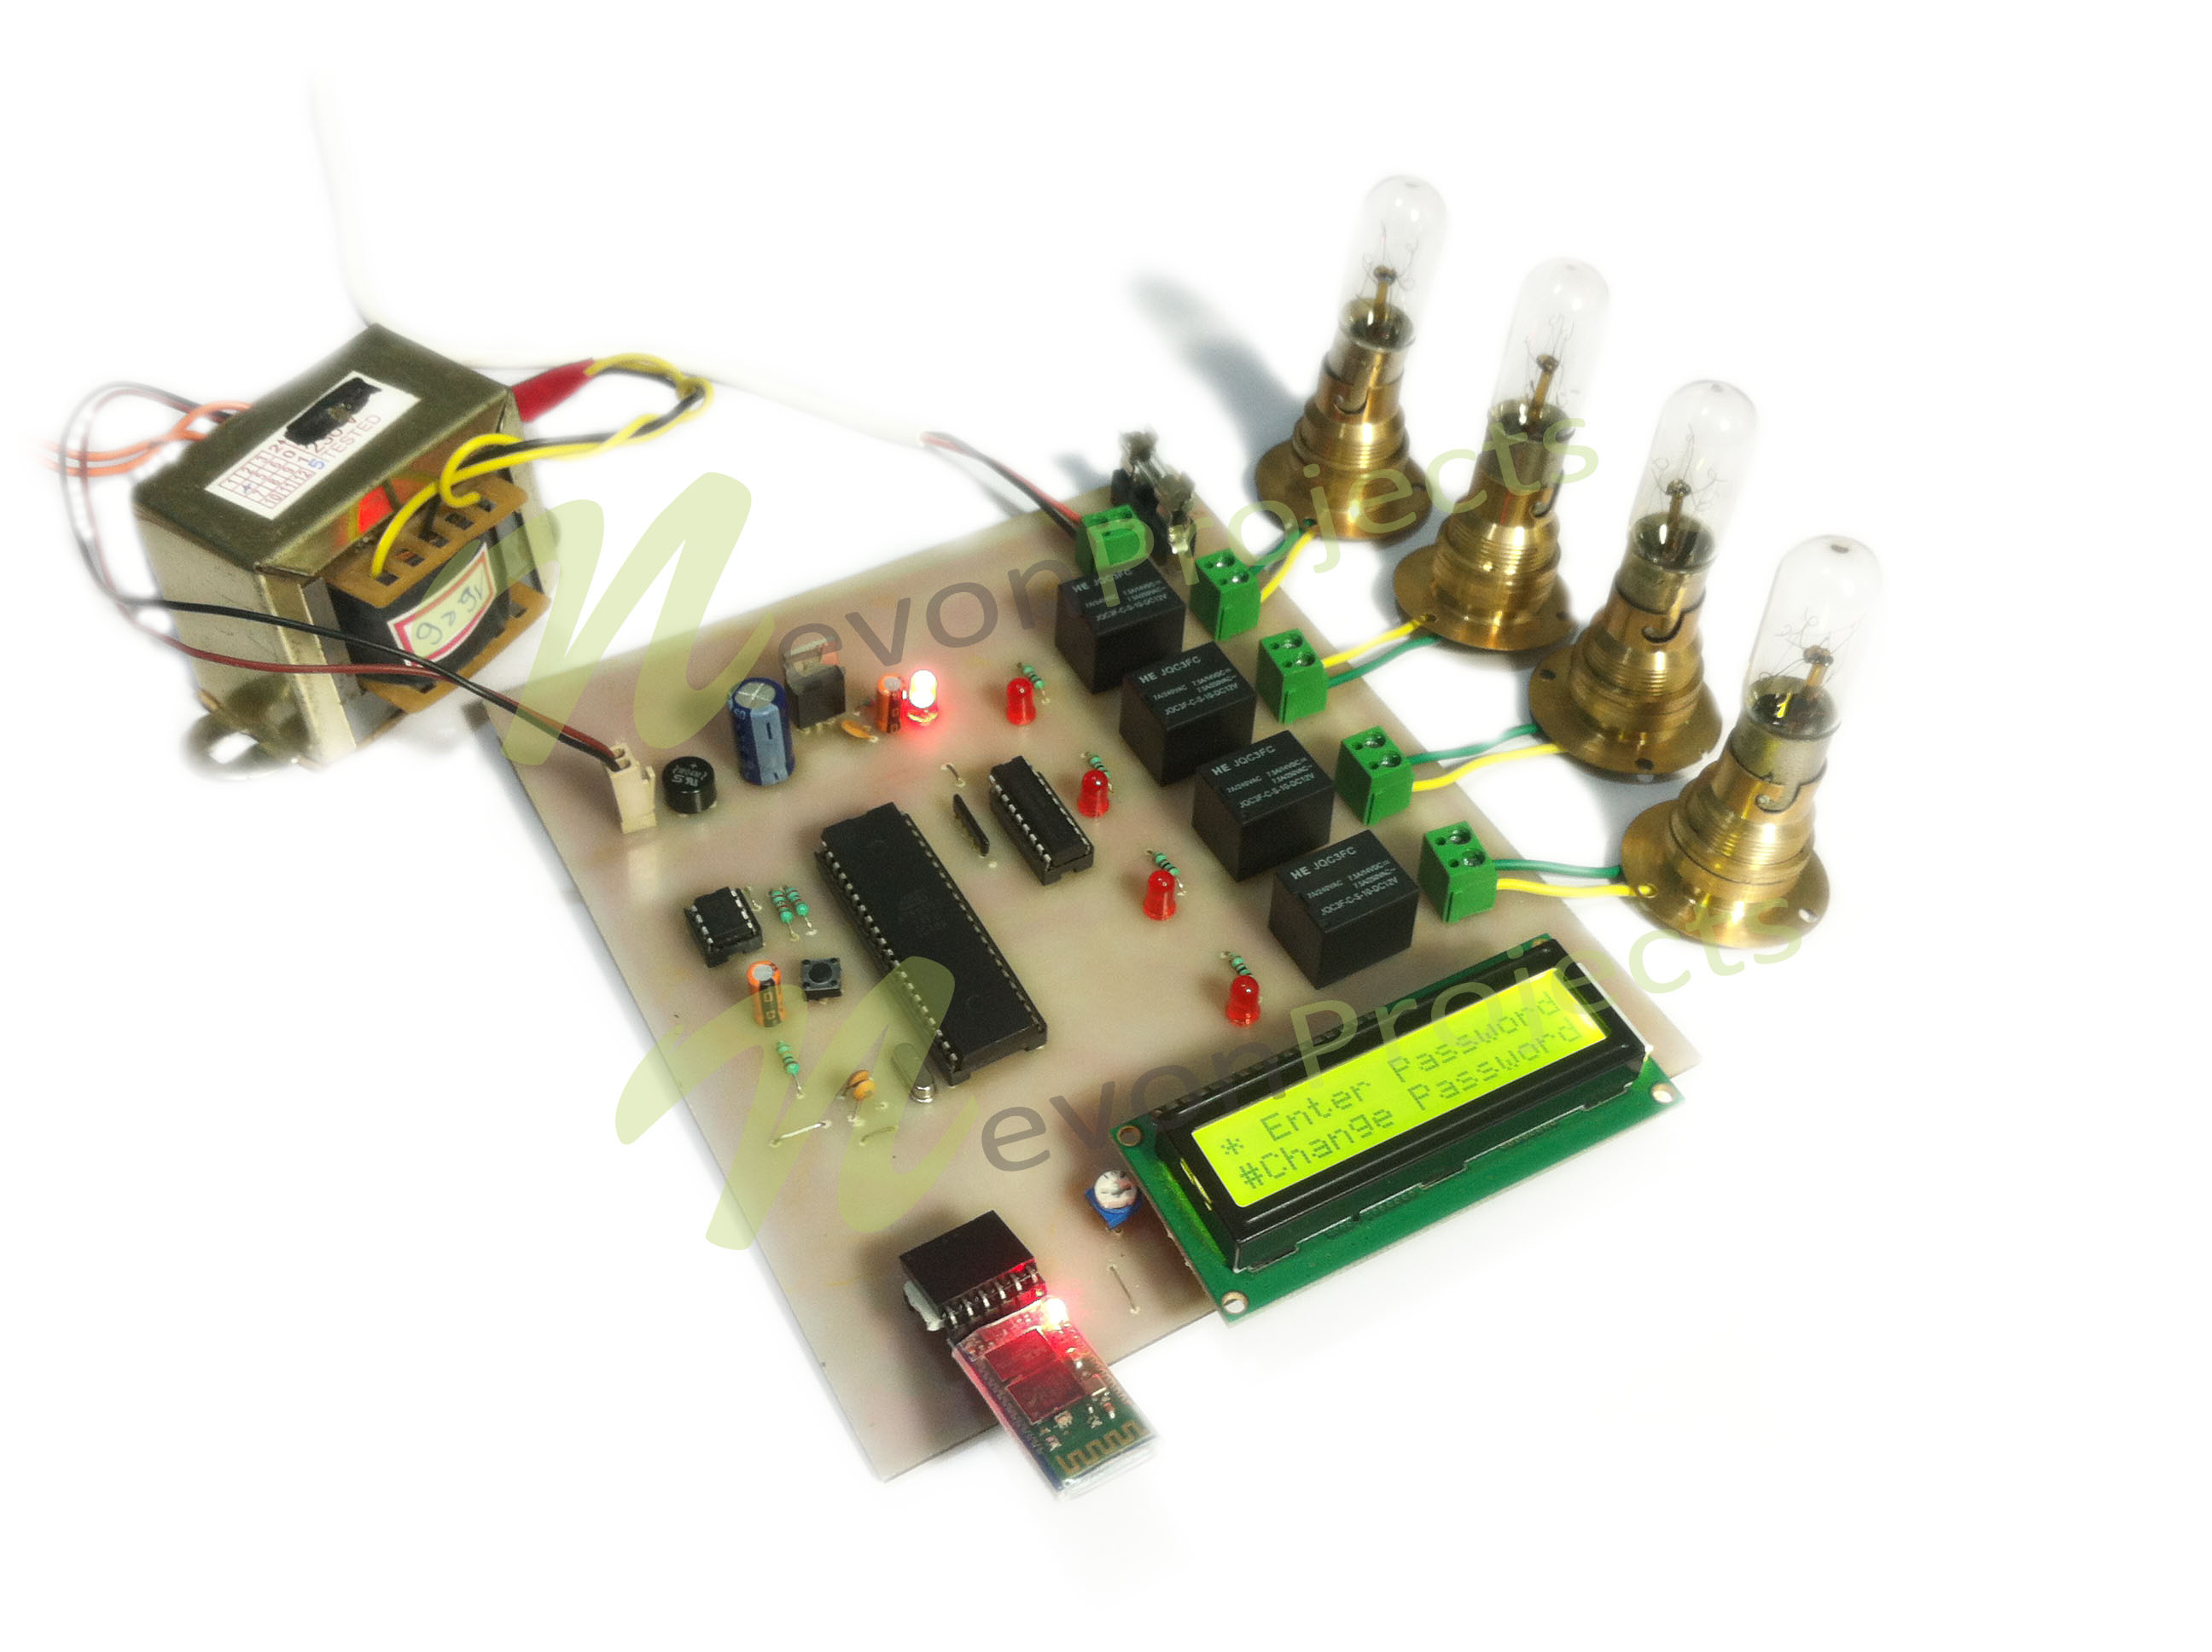 Android Circuit Breaker Project Nevonprojects Image Based On